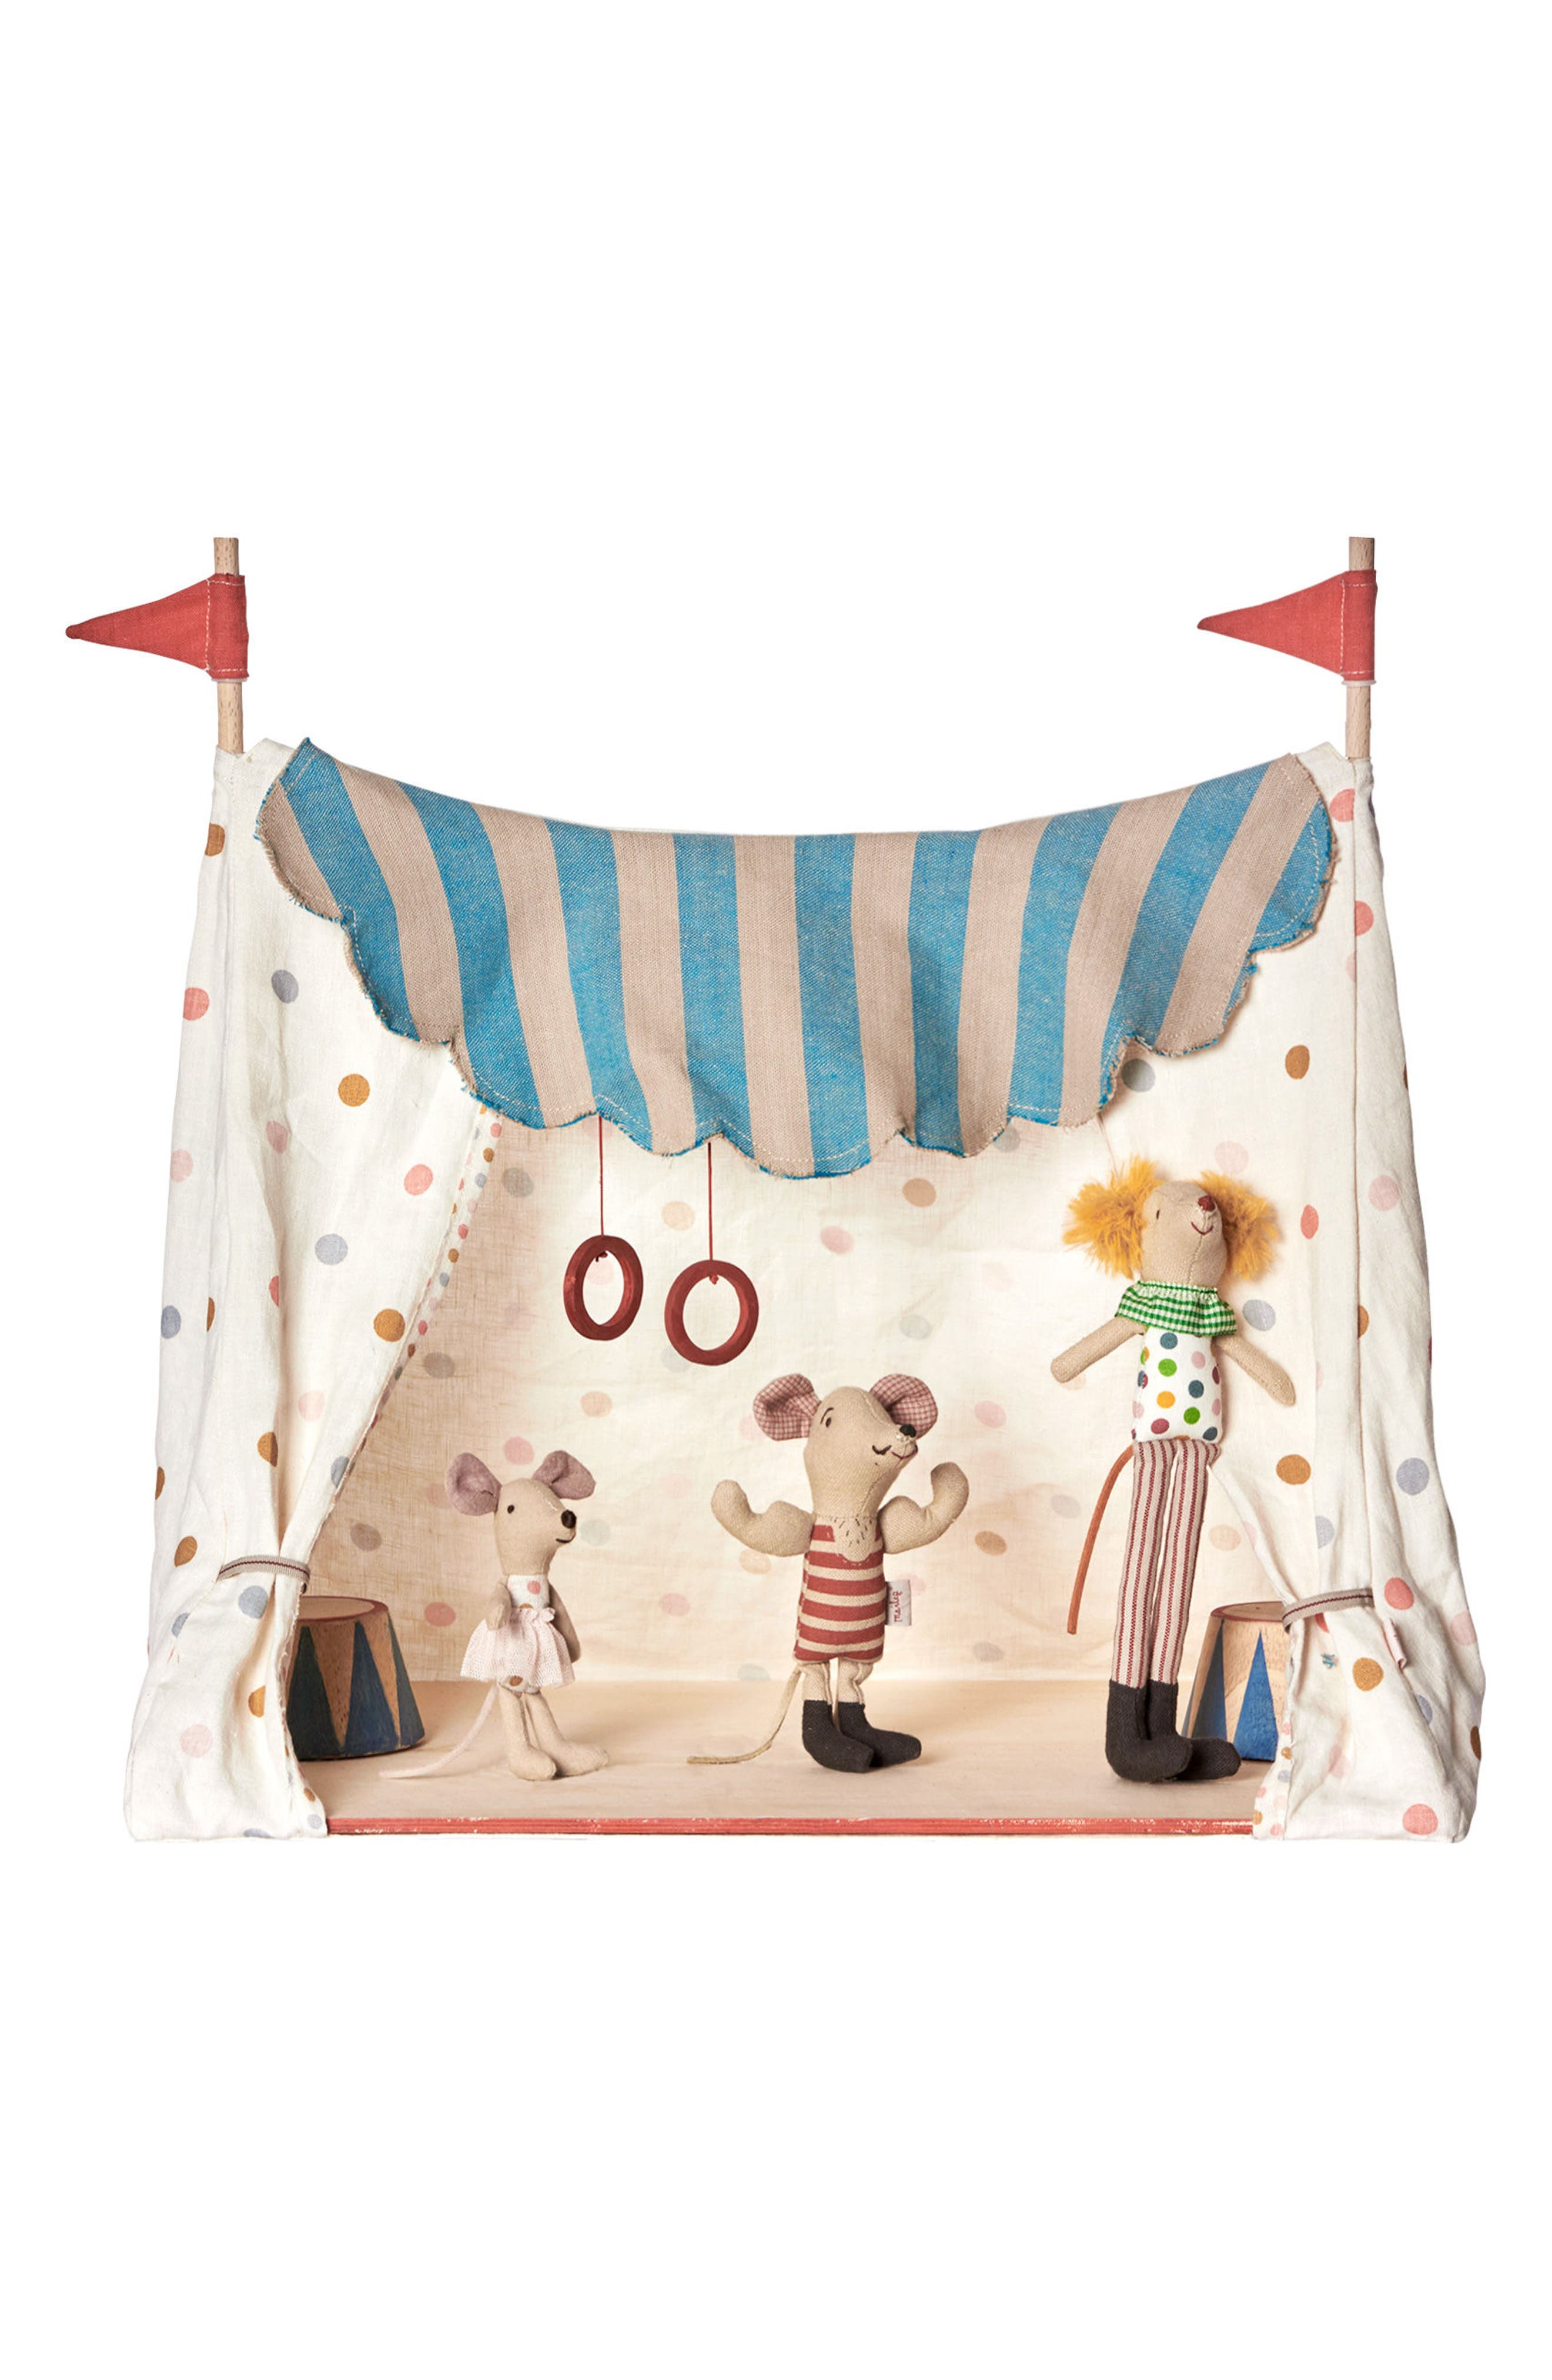 Circus Mice in a Tent,                             Main thumbnail 1, color,                             600